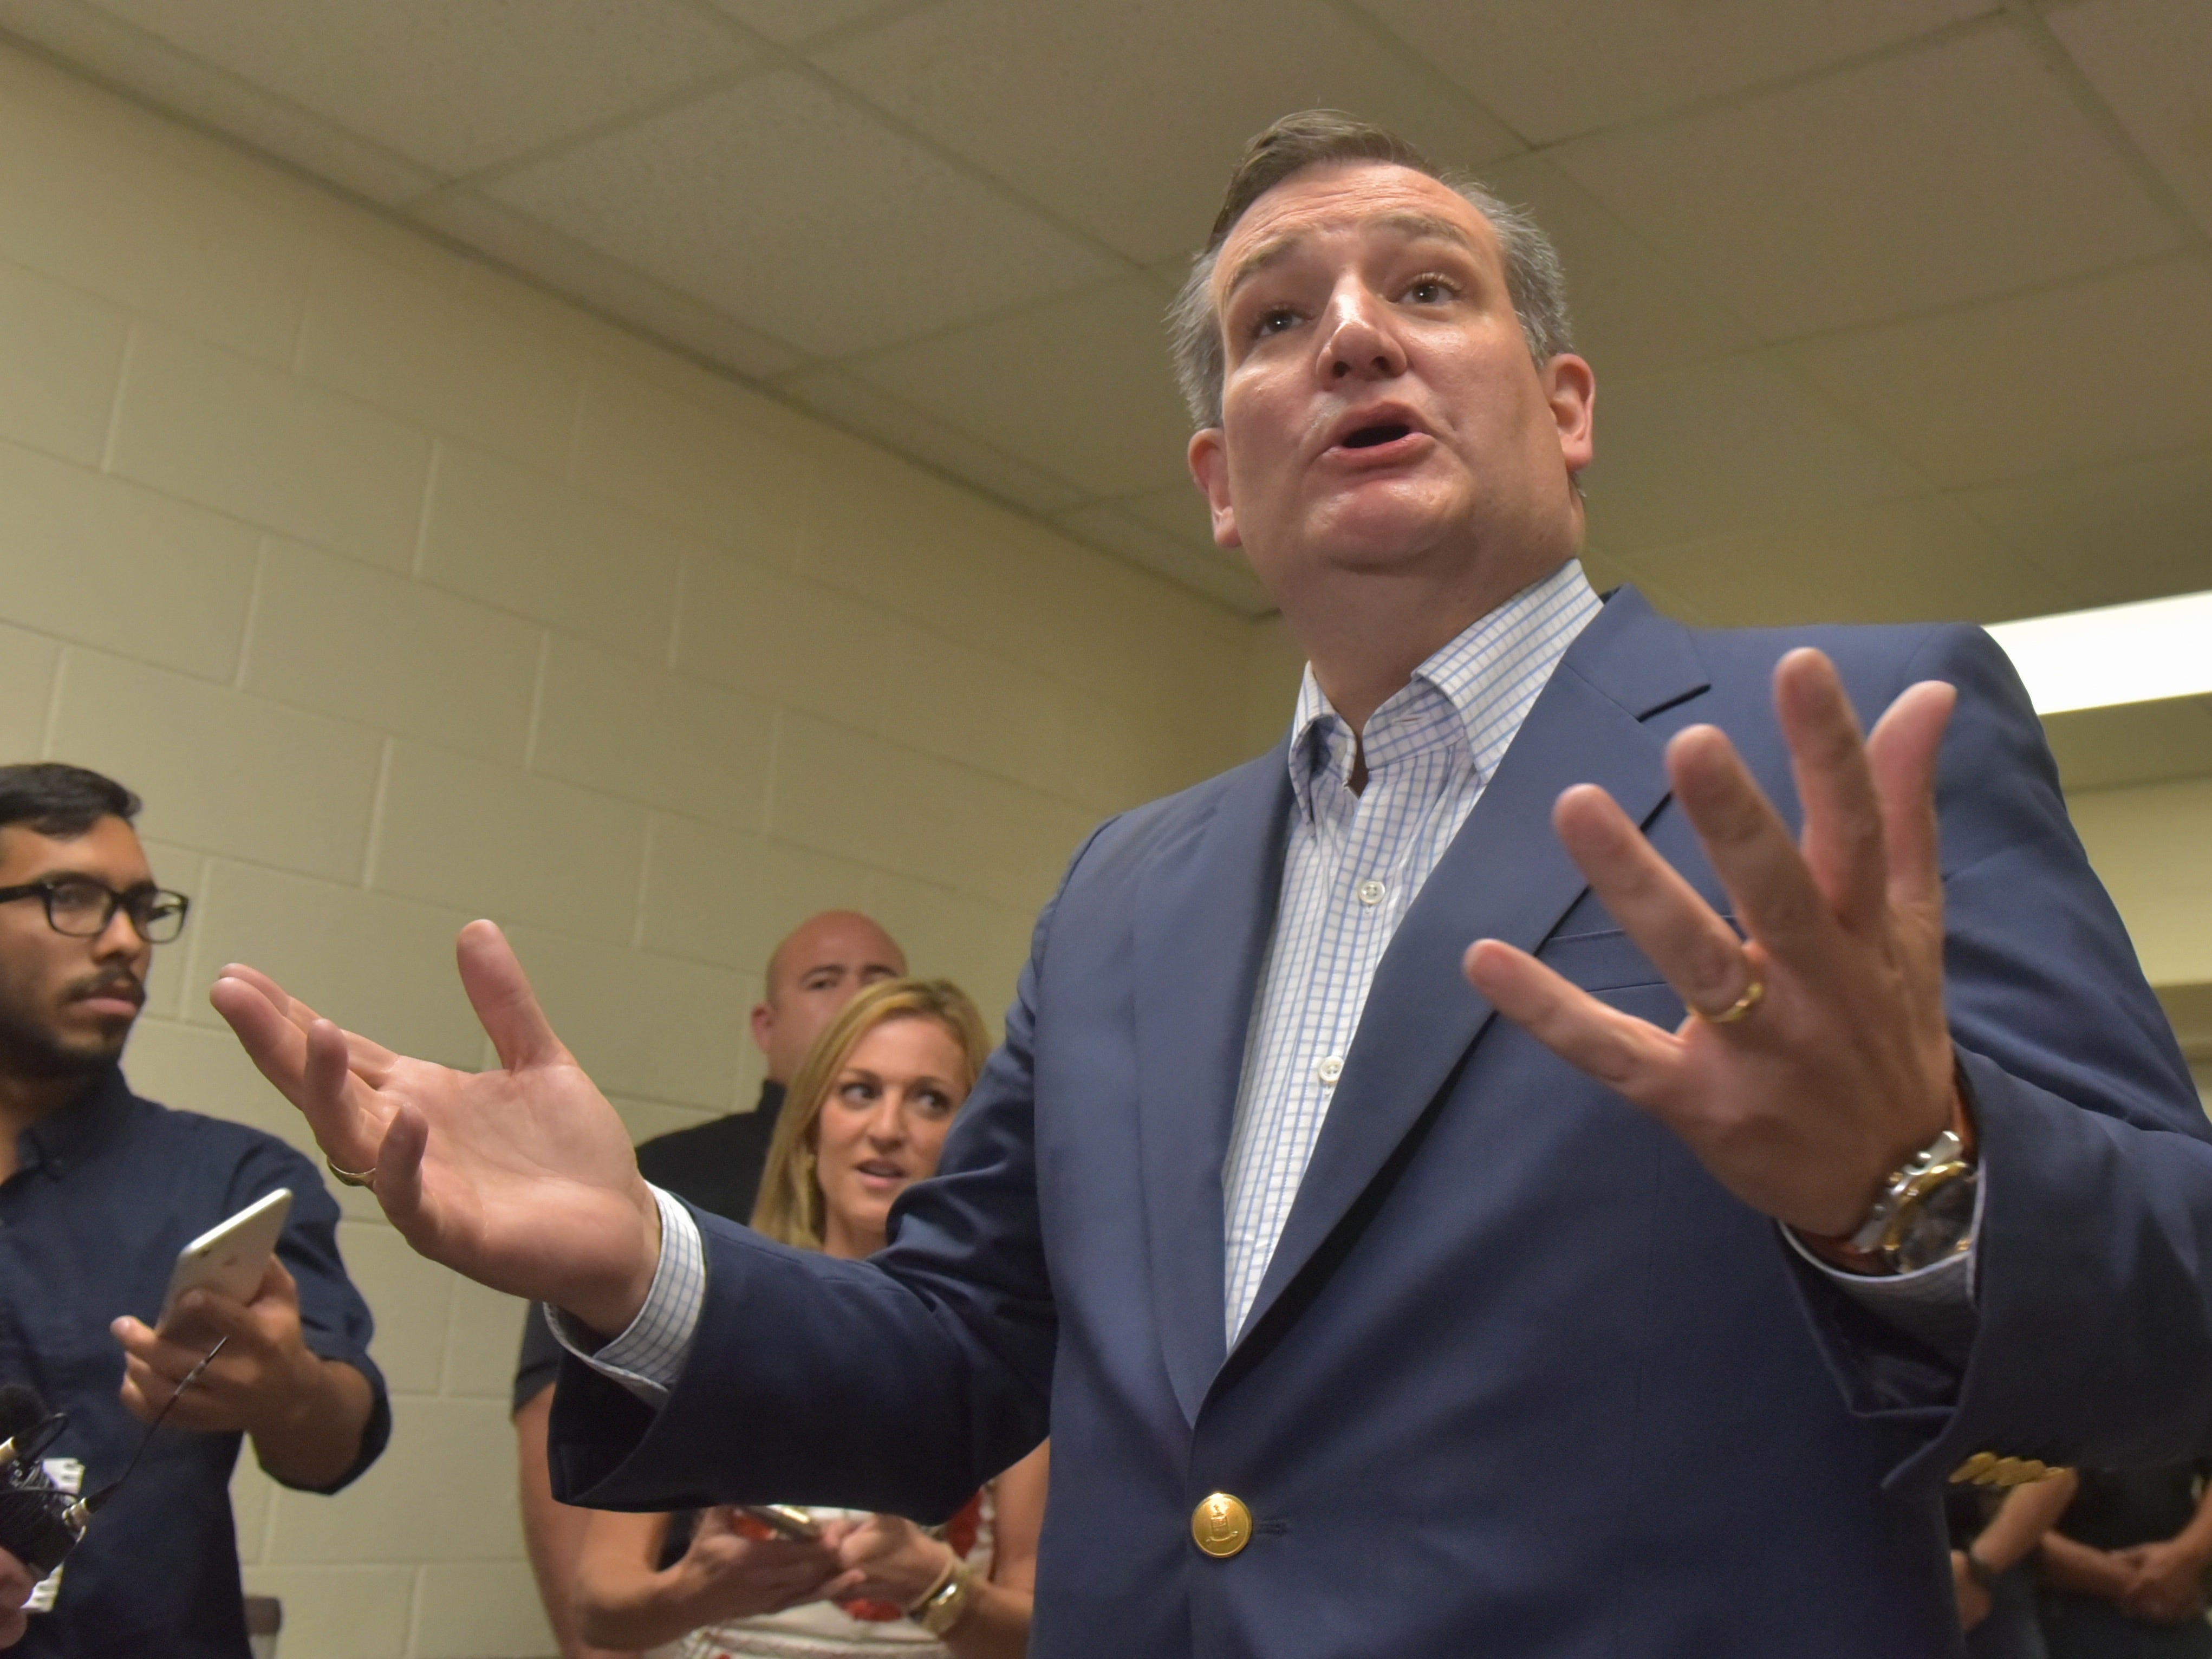 Texas Senator Ted Cruz addressed members of the media before addressing a packed house as he made a stop in El Paso Saturday night at Franklin High School on El Paso's westside.